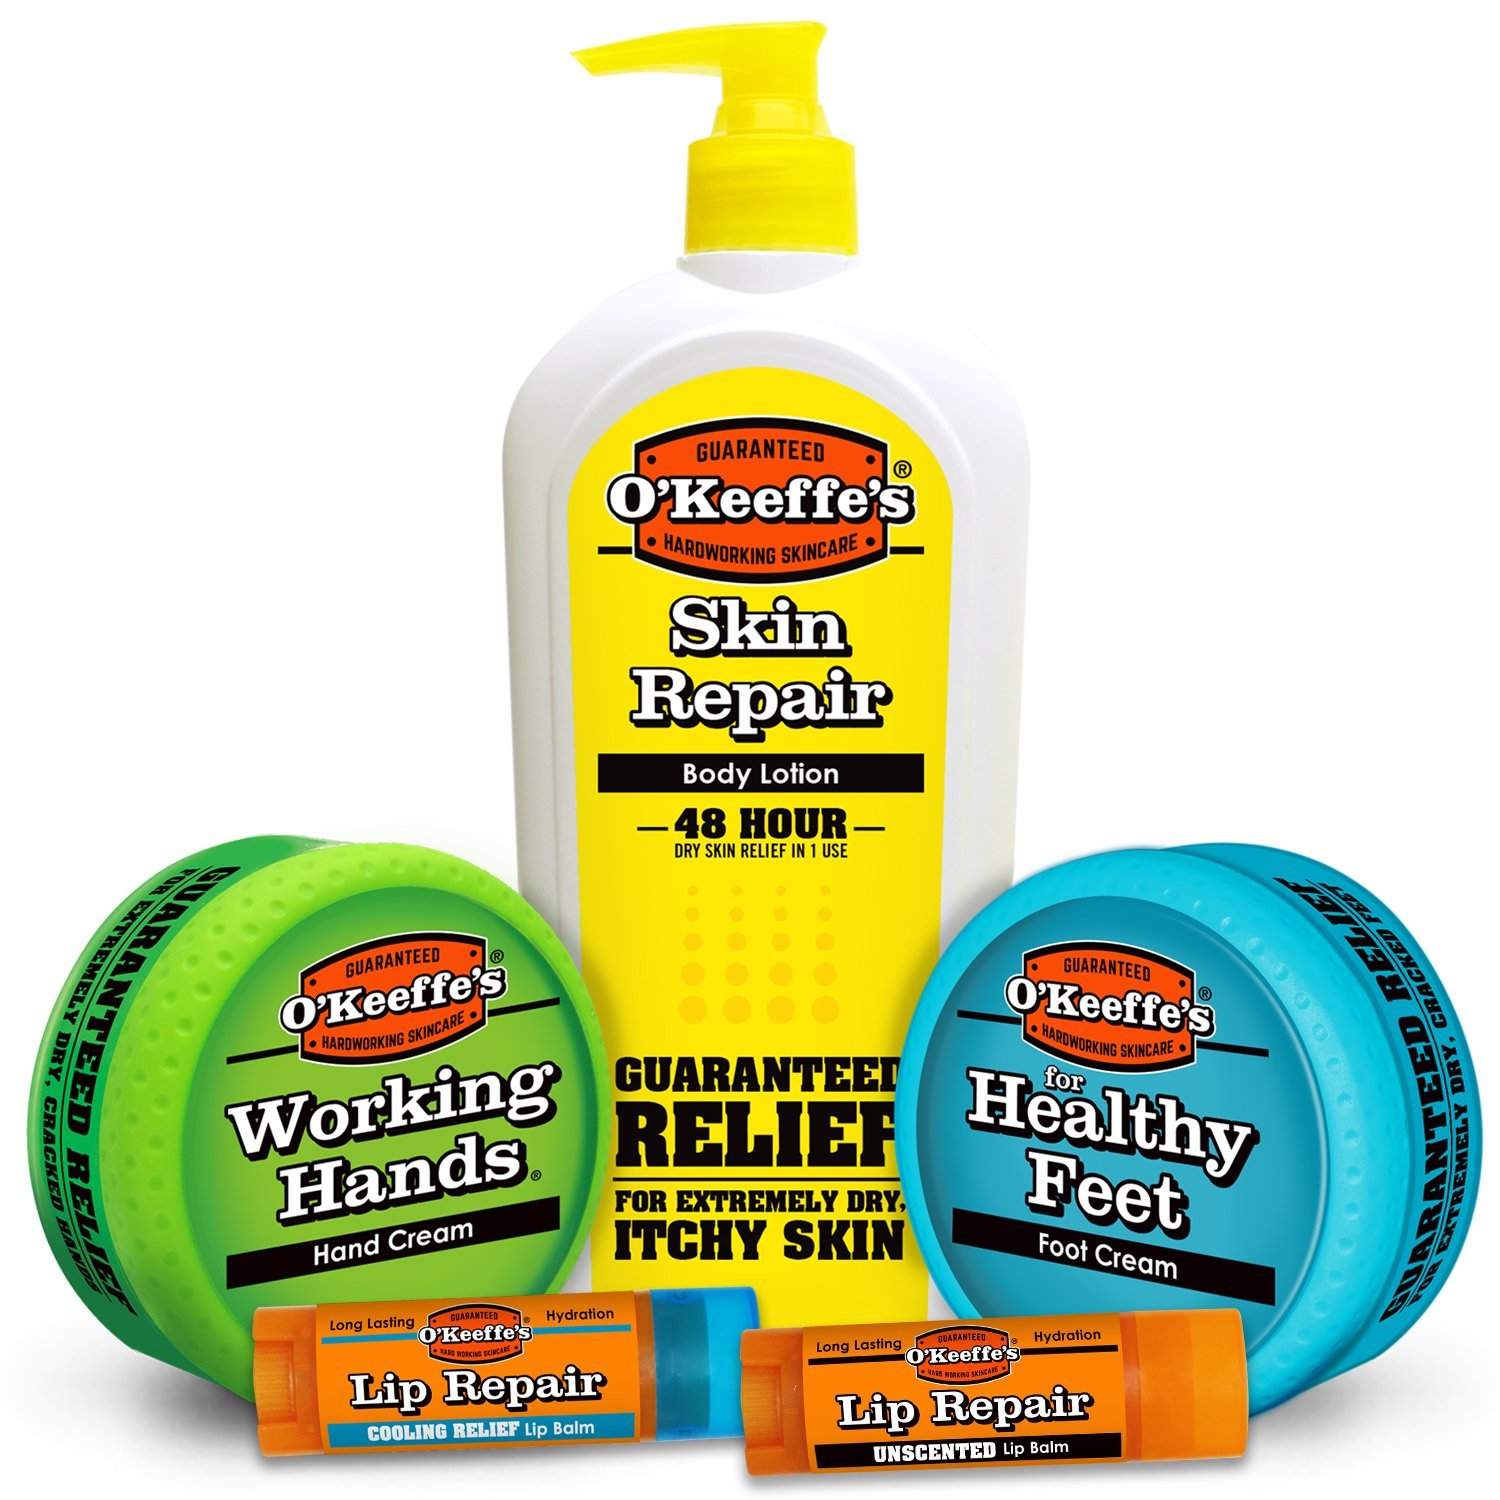 O'keeffe's Hard Working Variety Pack (Hands, Feet, Pump Lotion, Original and Cooling Lip Repair)